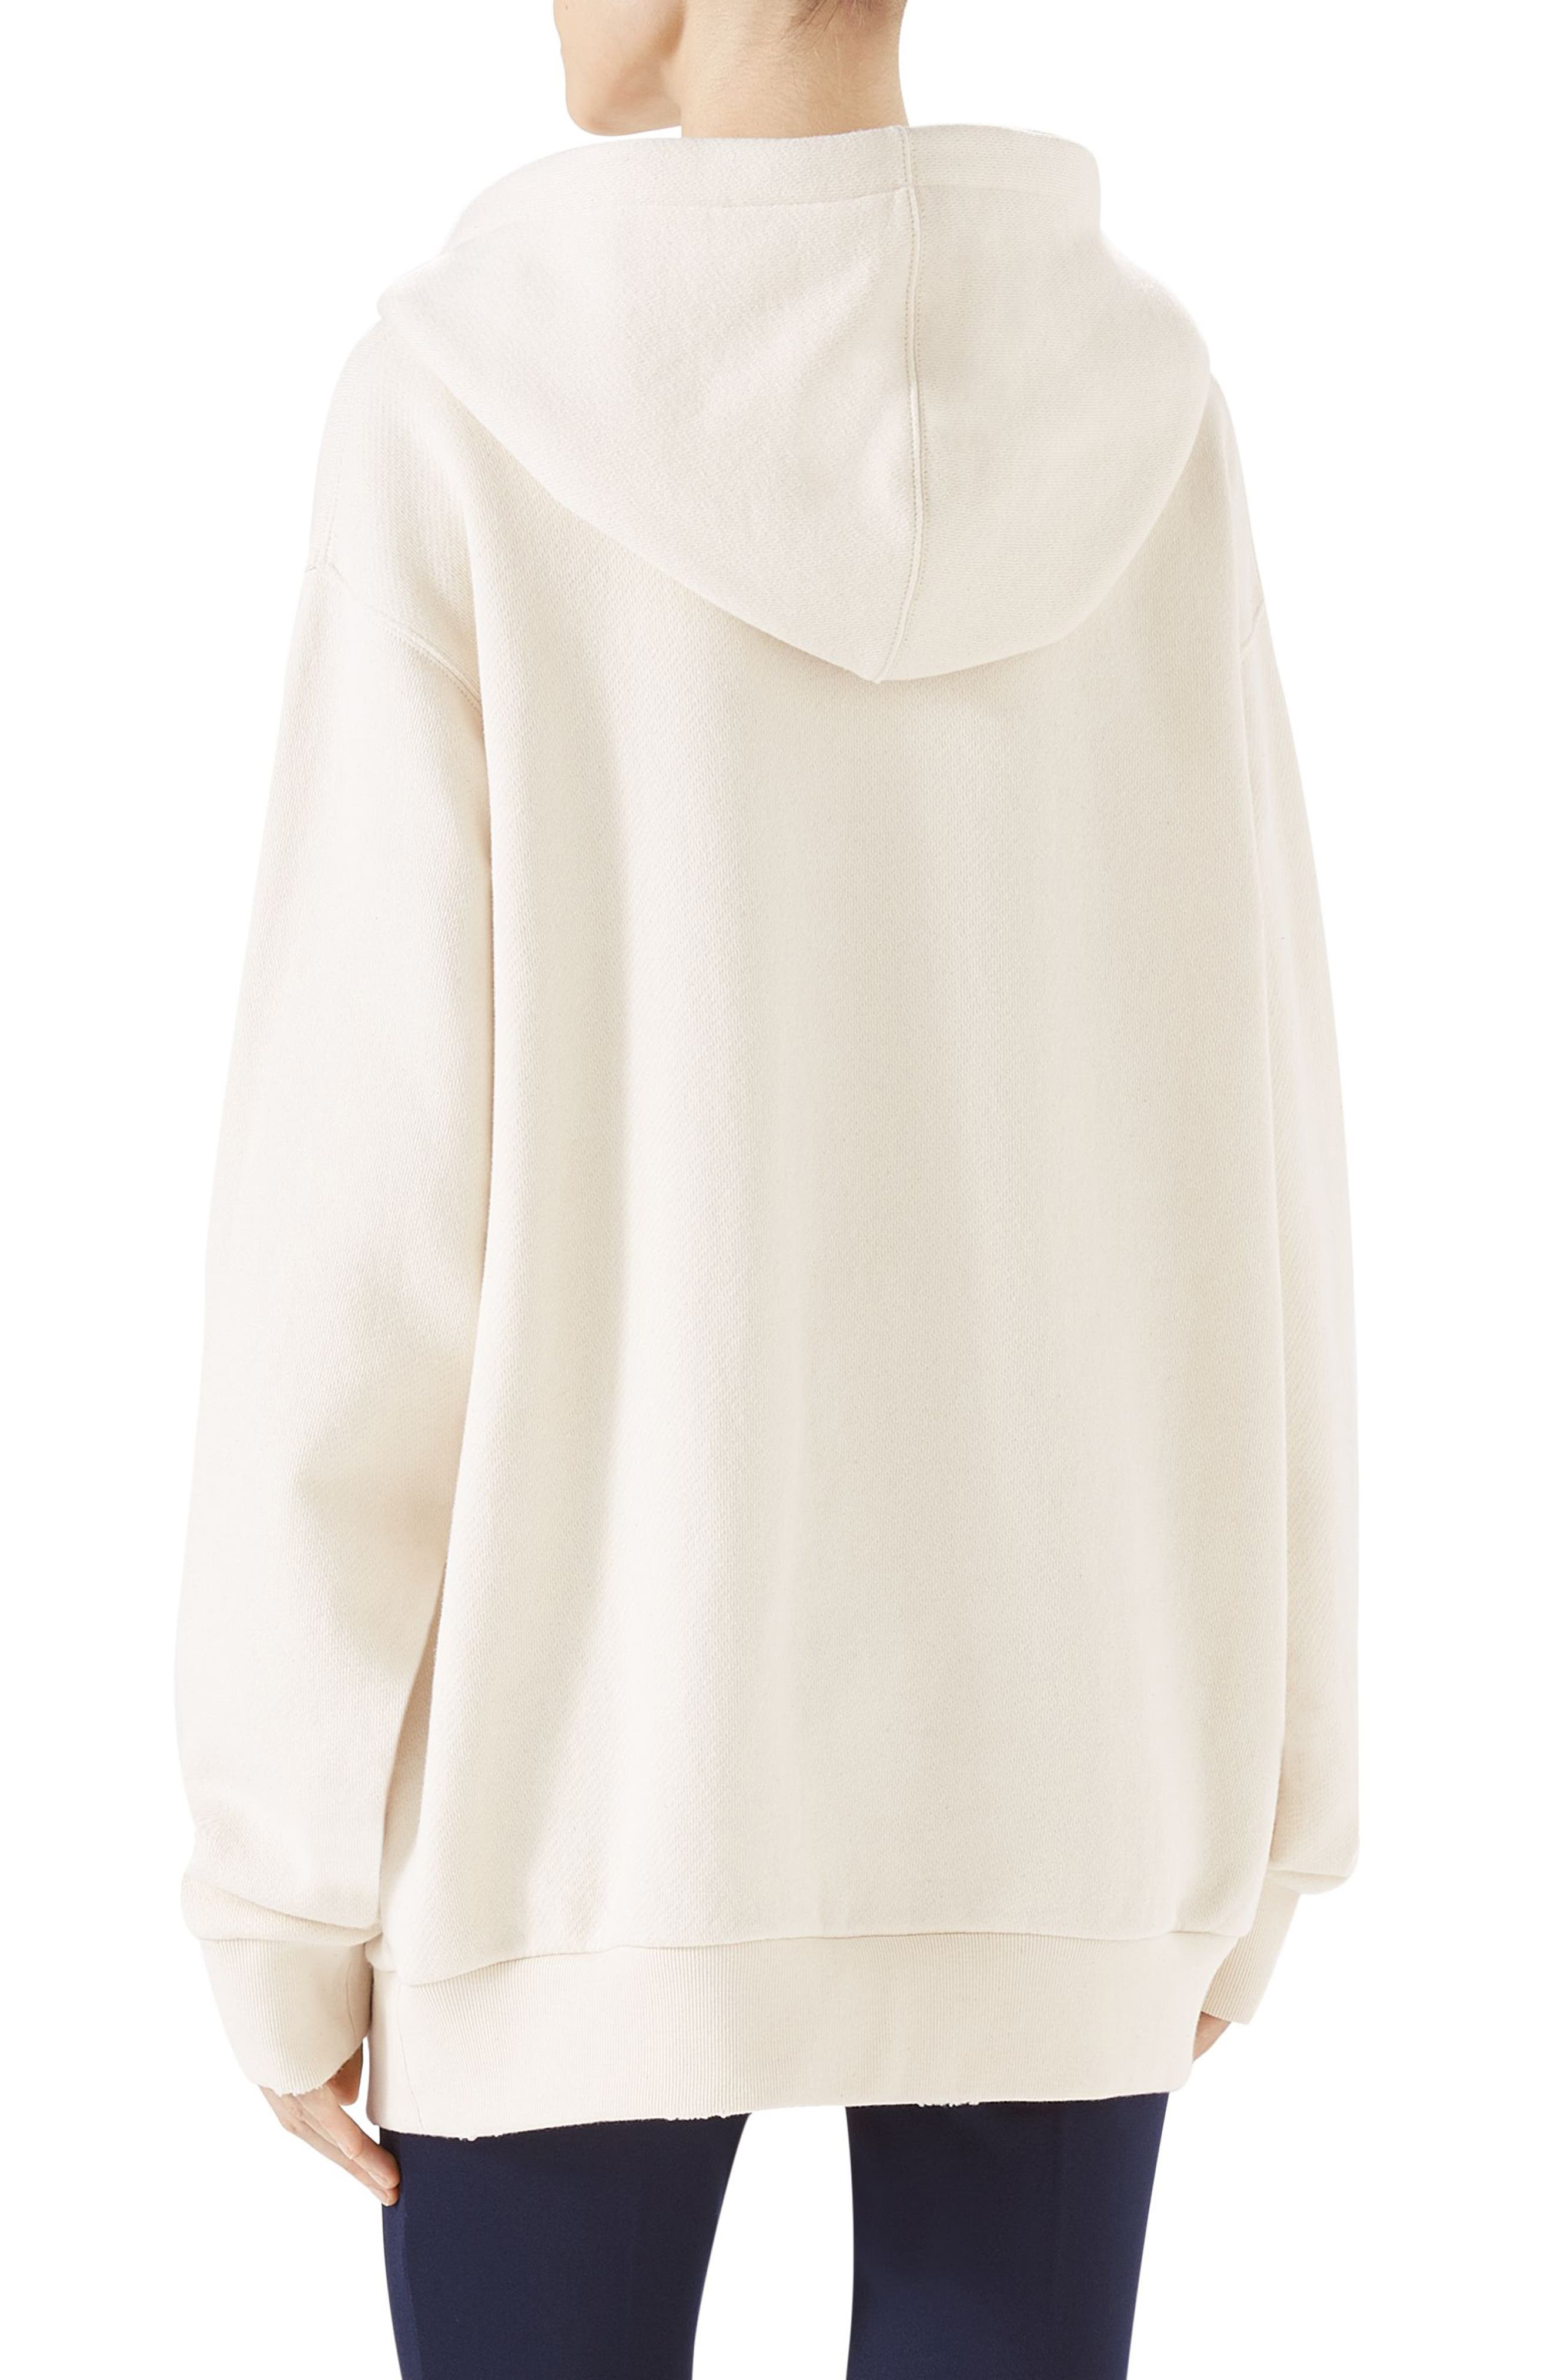 Guccify Yourself Snake Print Hooded Sweatshirt,                             Alternate thumbnail 2, color,                             Ivory/ Red